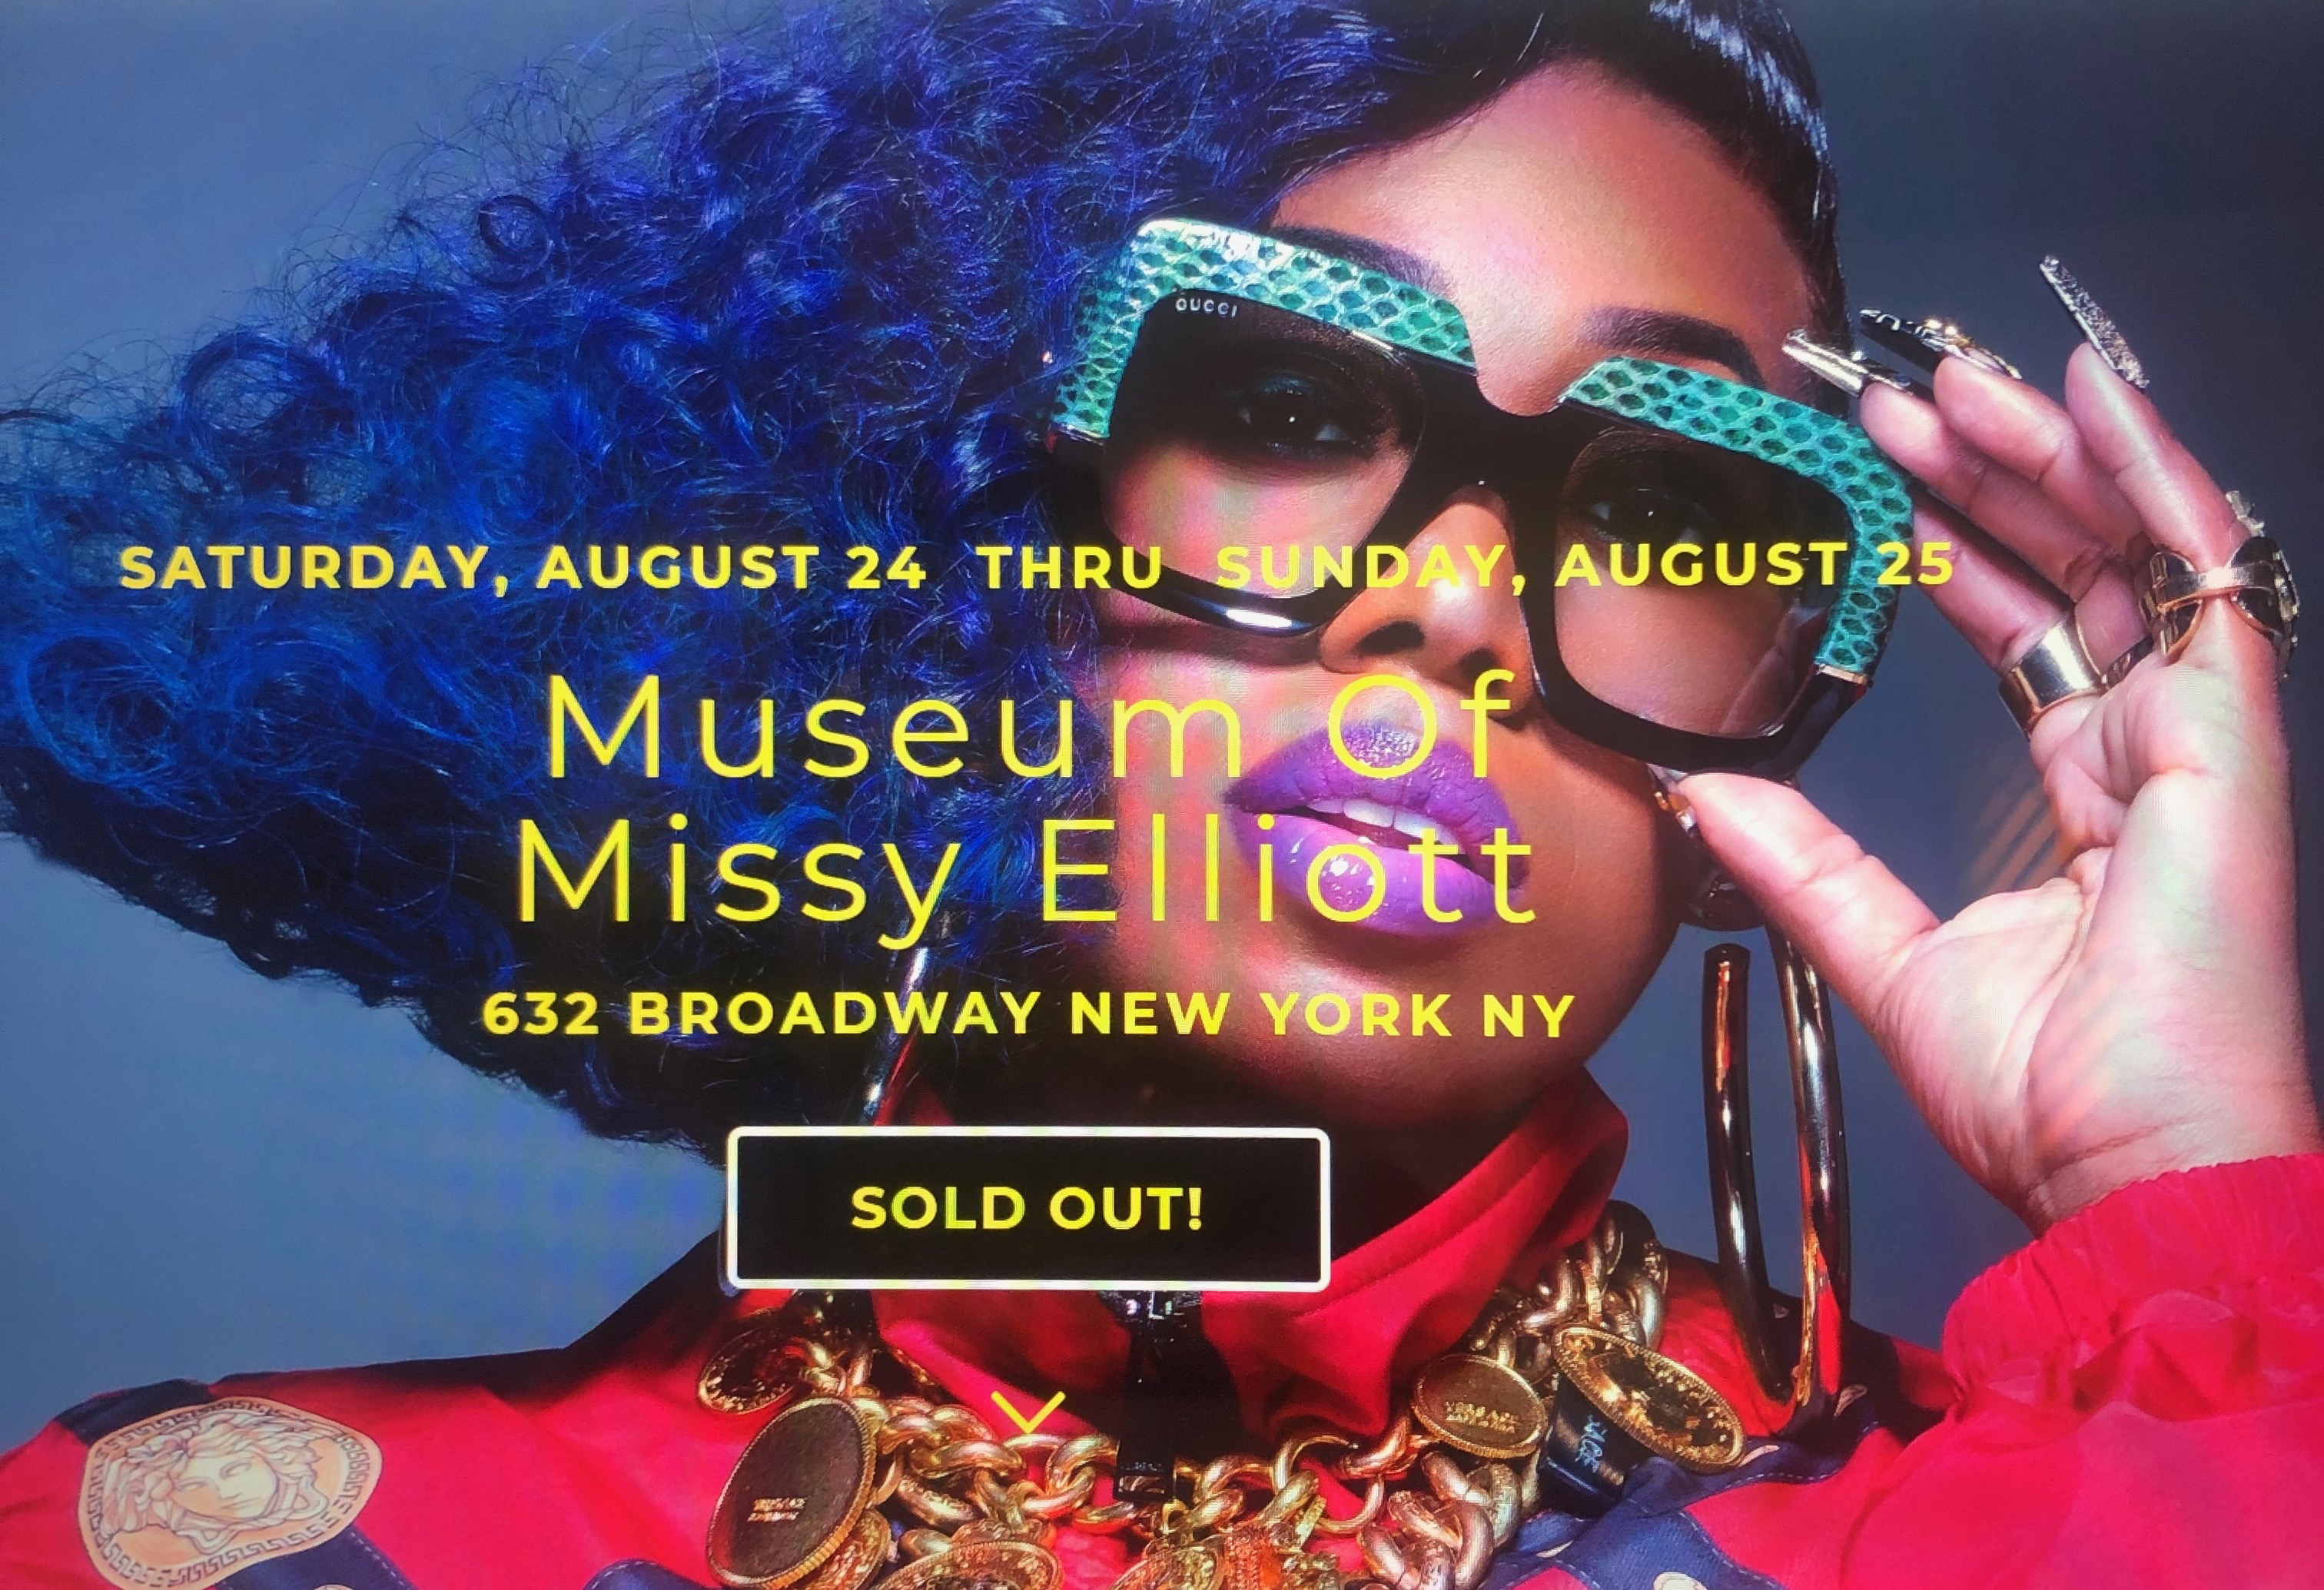 here comes the pop up museum of Missy Elliott